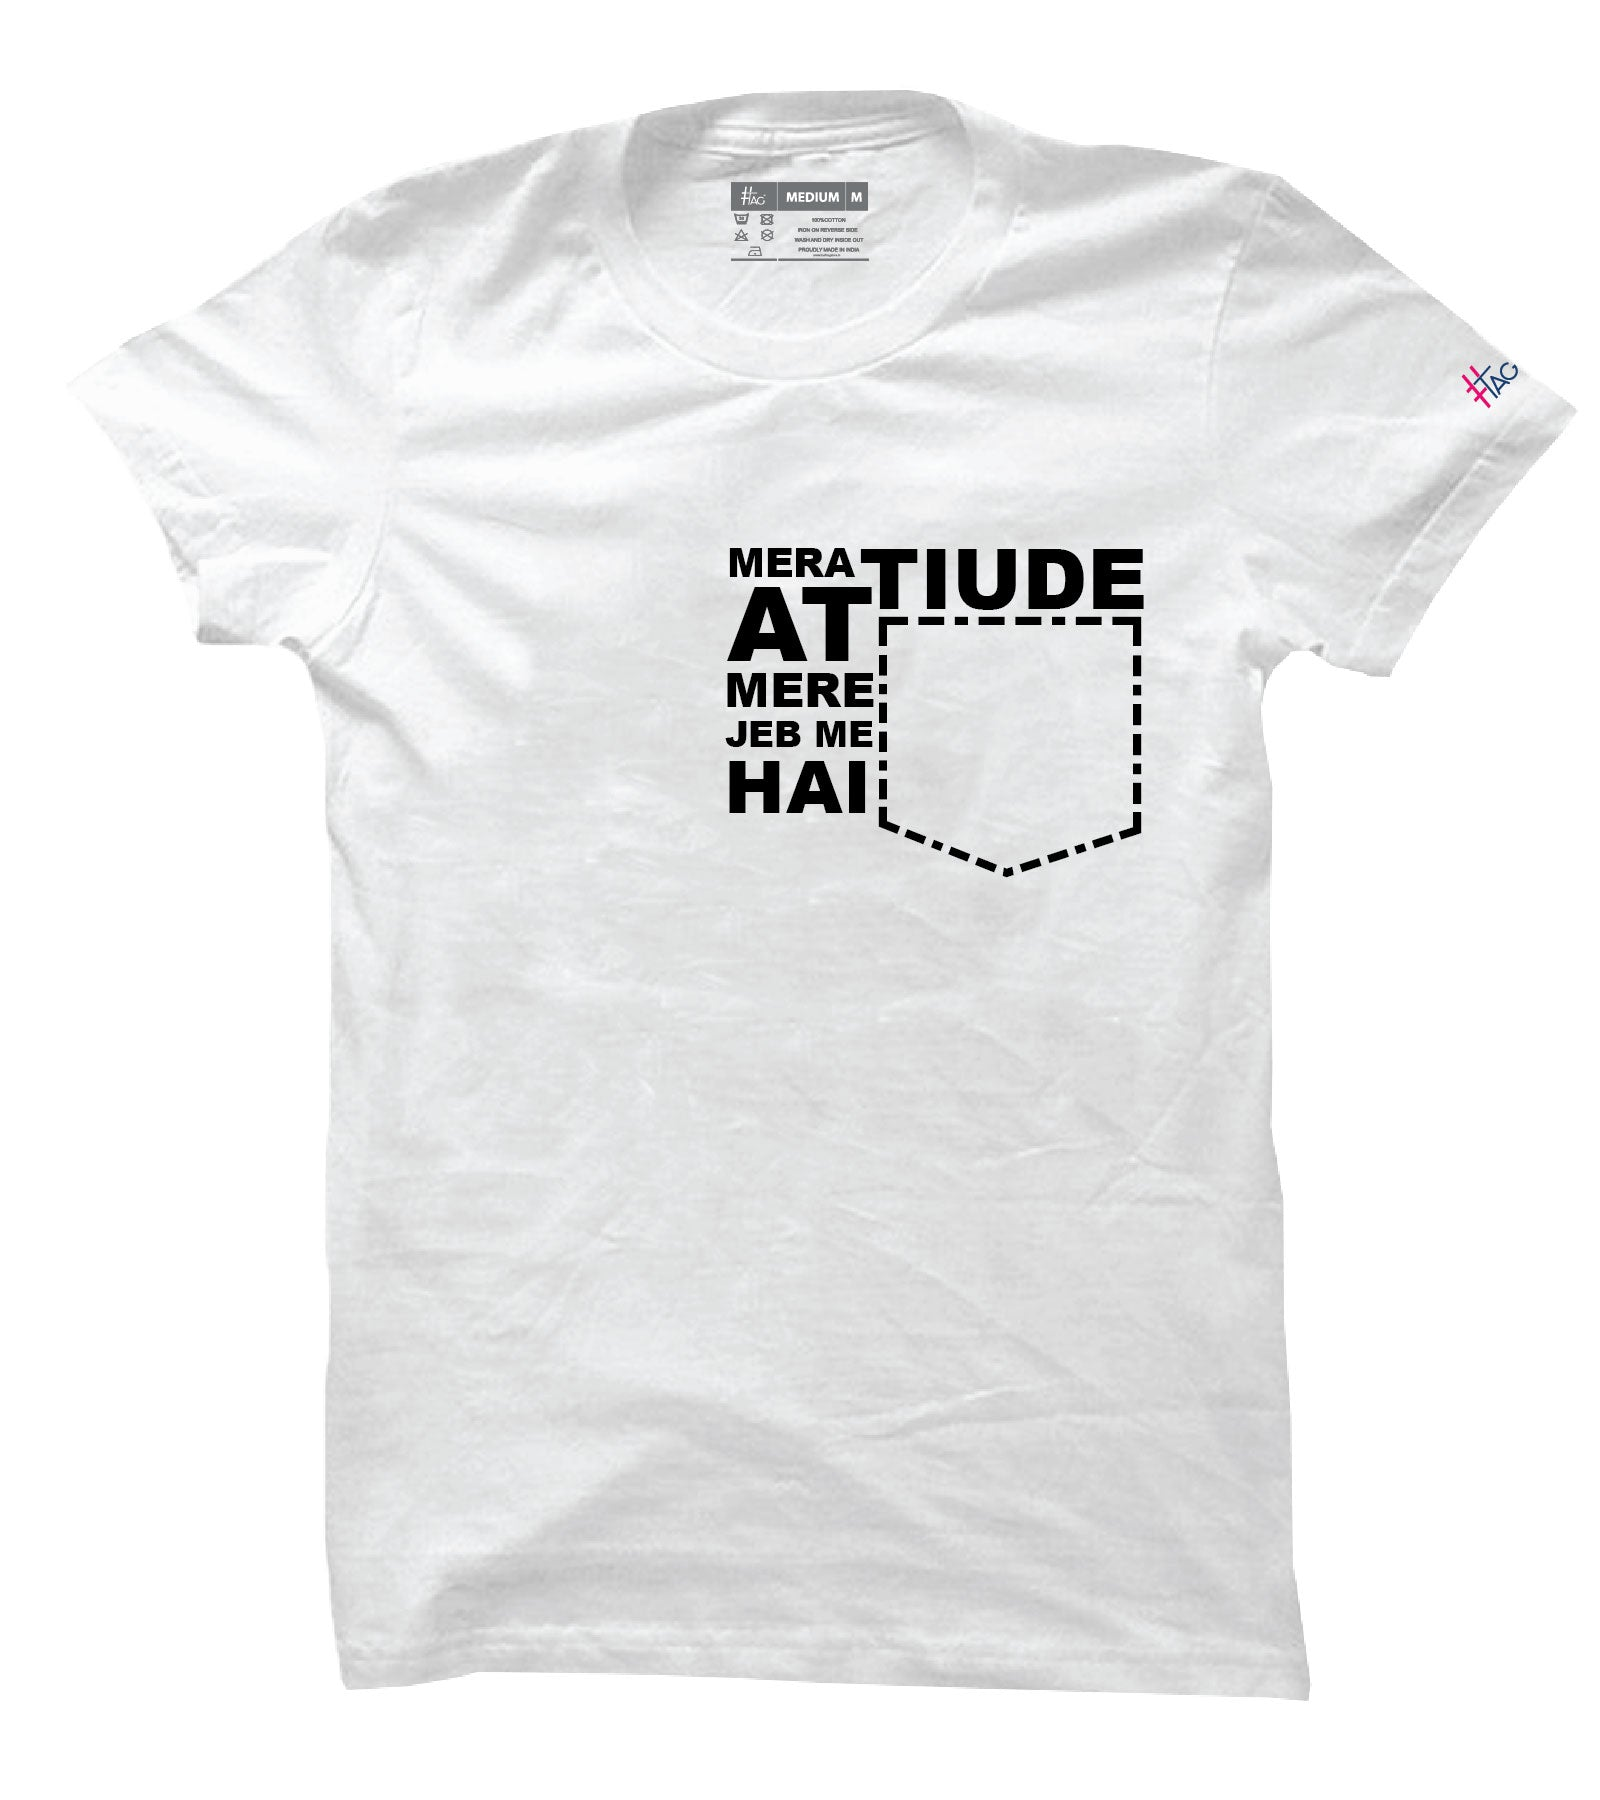 a707454731 Buy Hashtag T-shirts online India